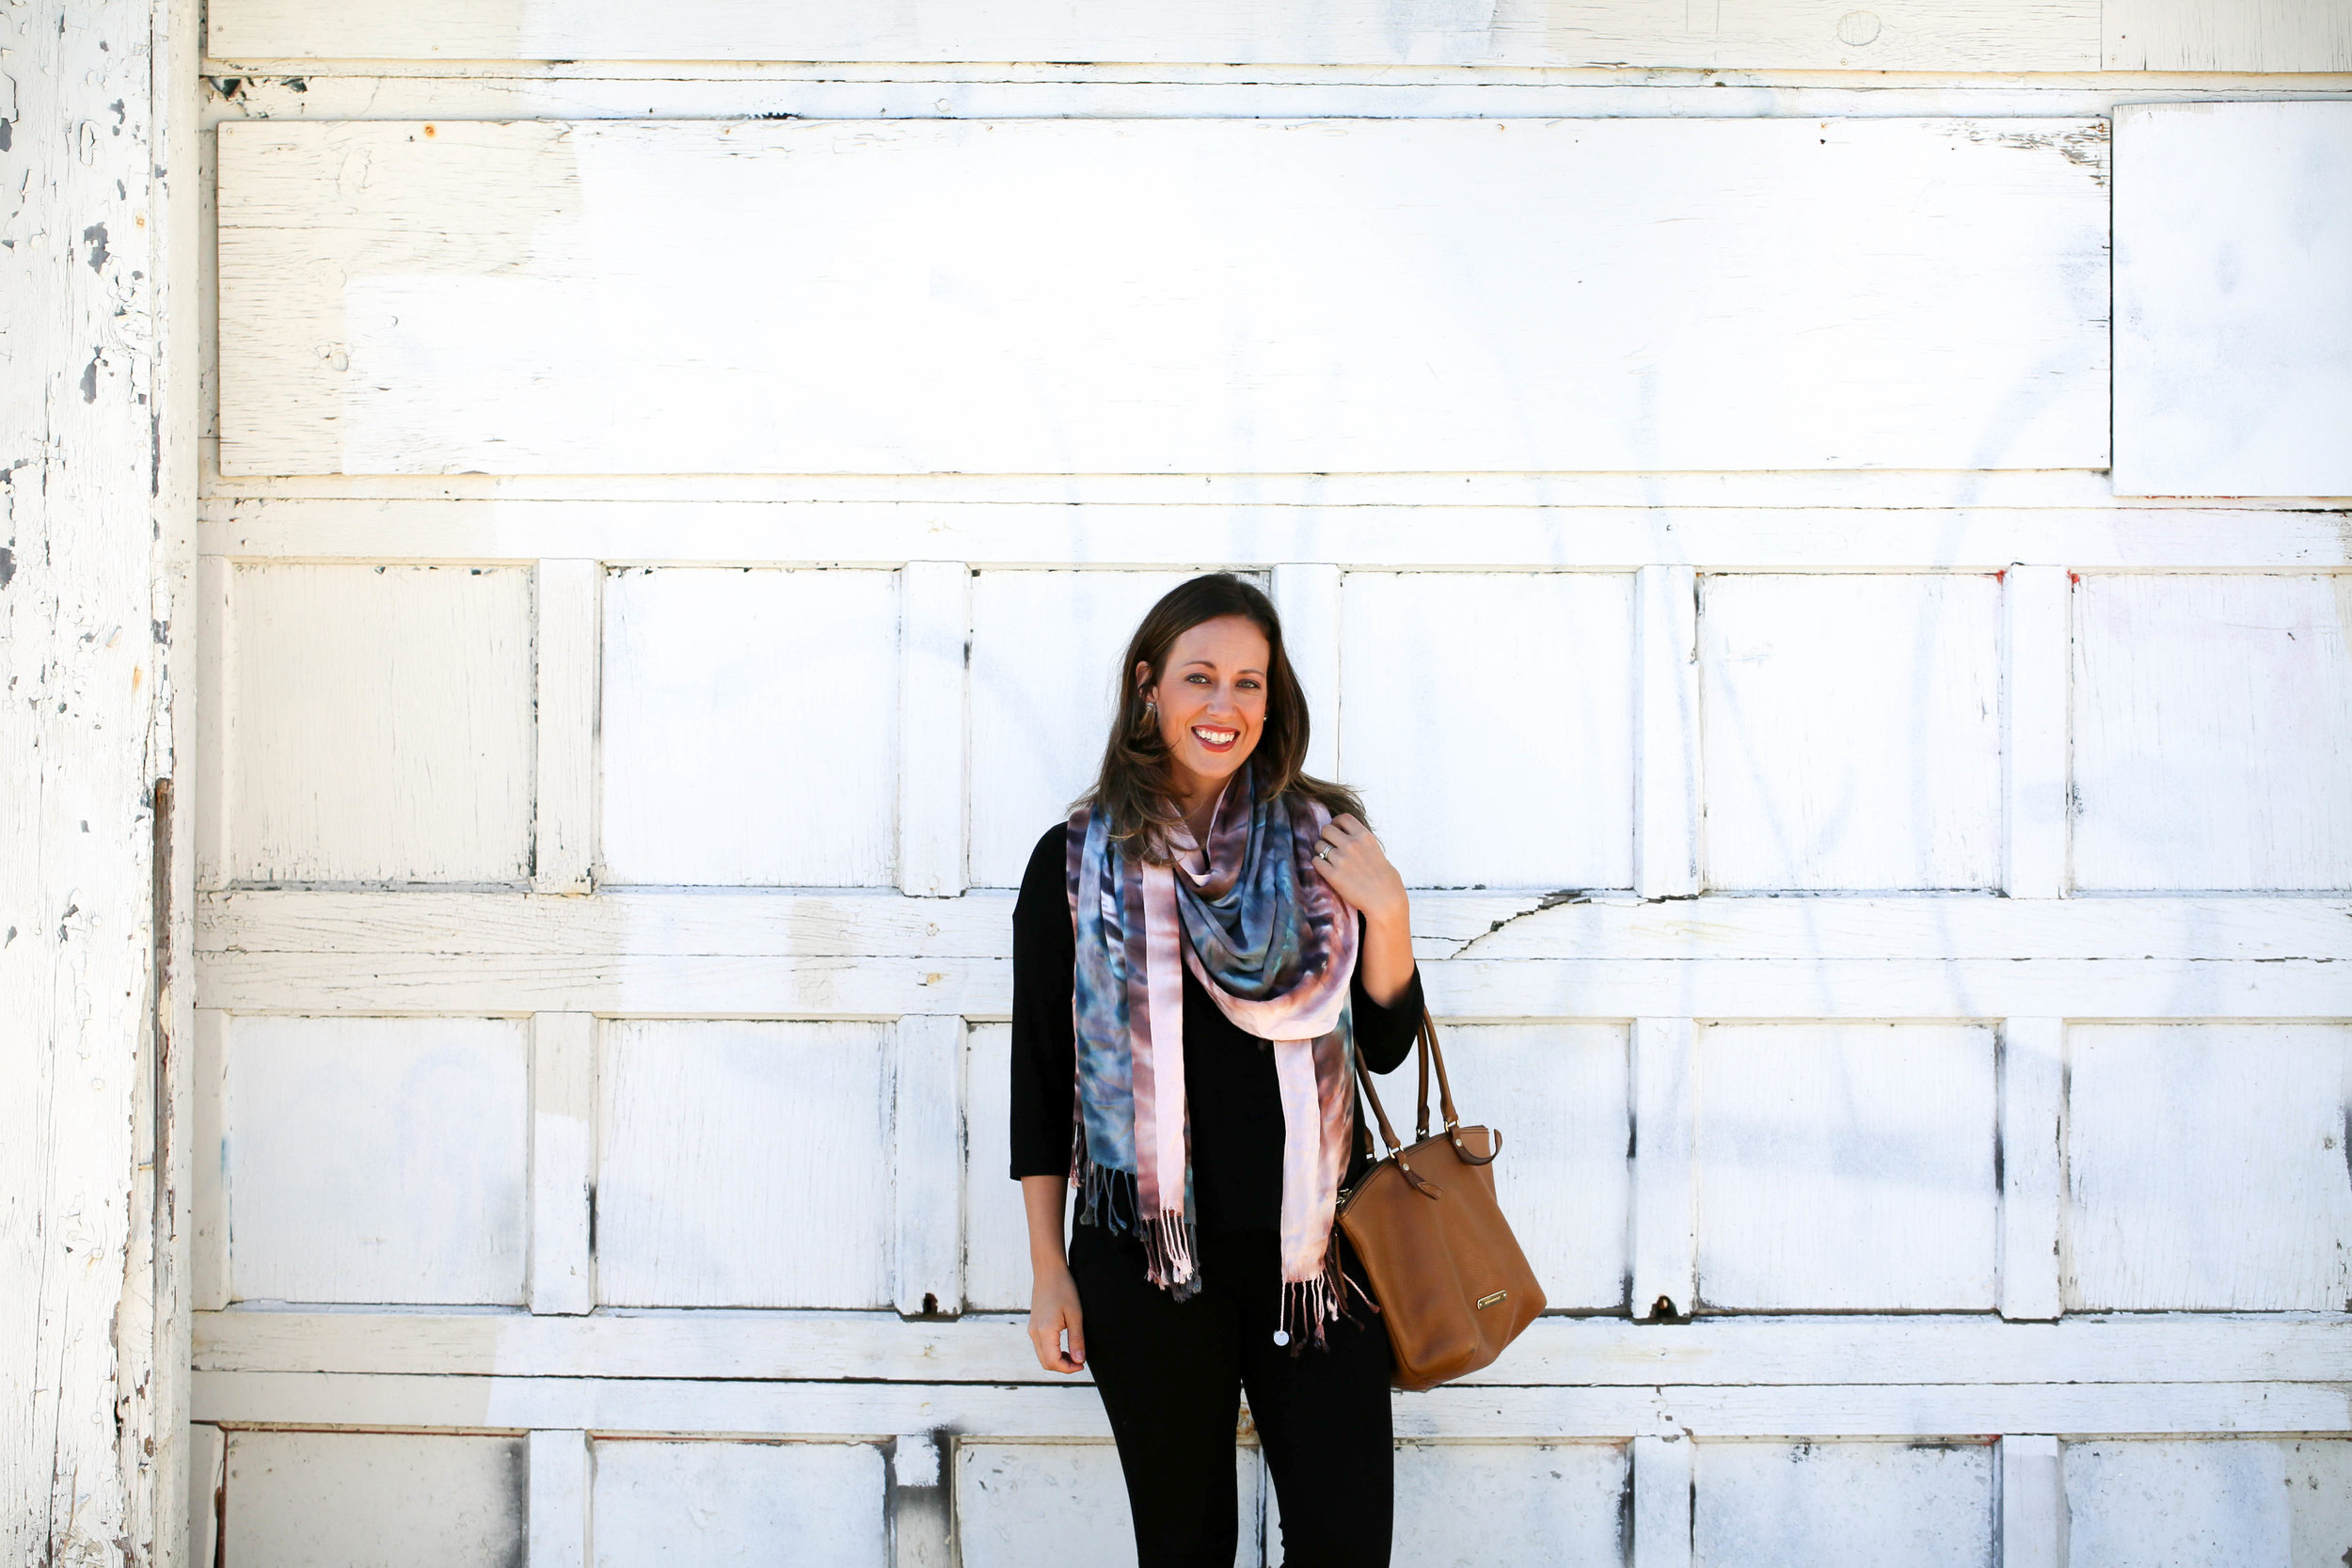 4 ways to tie a scarf, scarves, fall fashion, fall scarves, how to wear tie dye, tie dye fashion, tie dye, fall prints, autumn, best accessories, pop of color, statement piece,